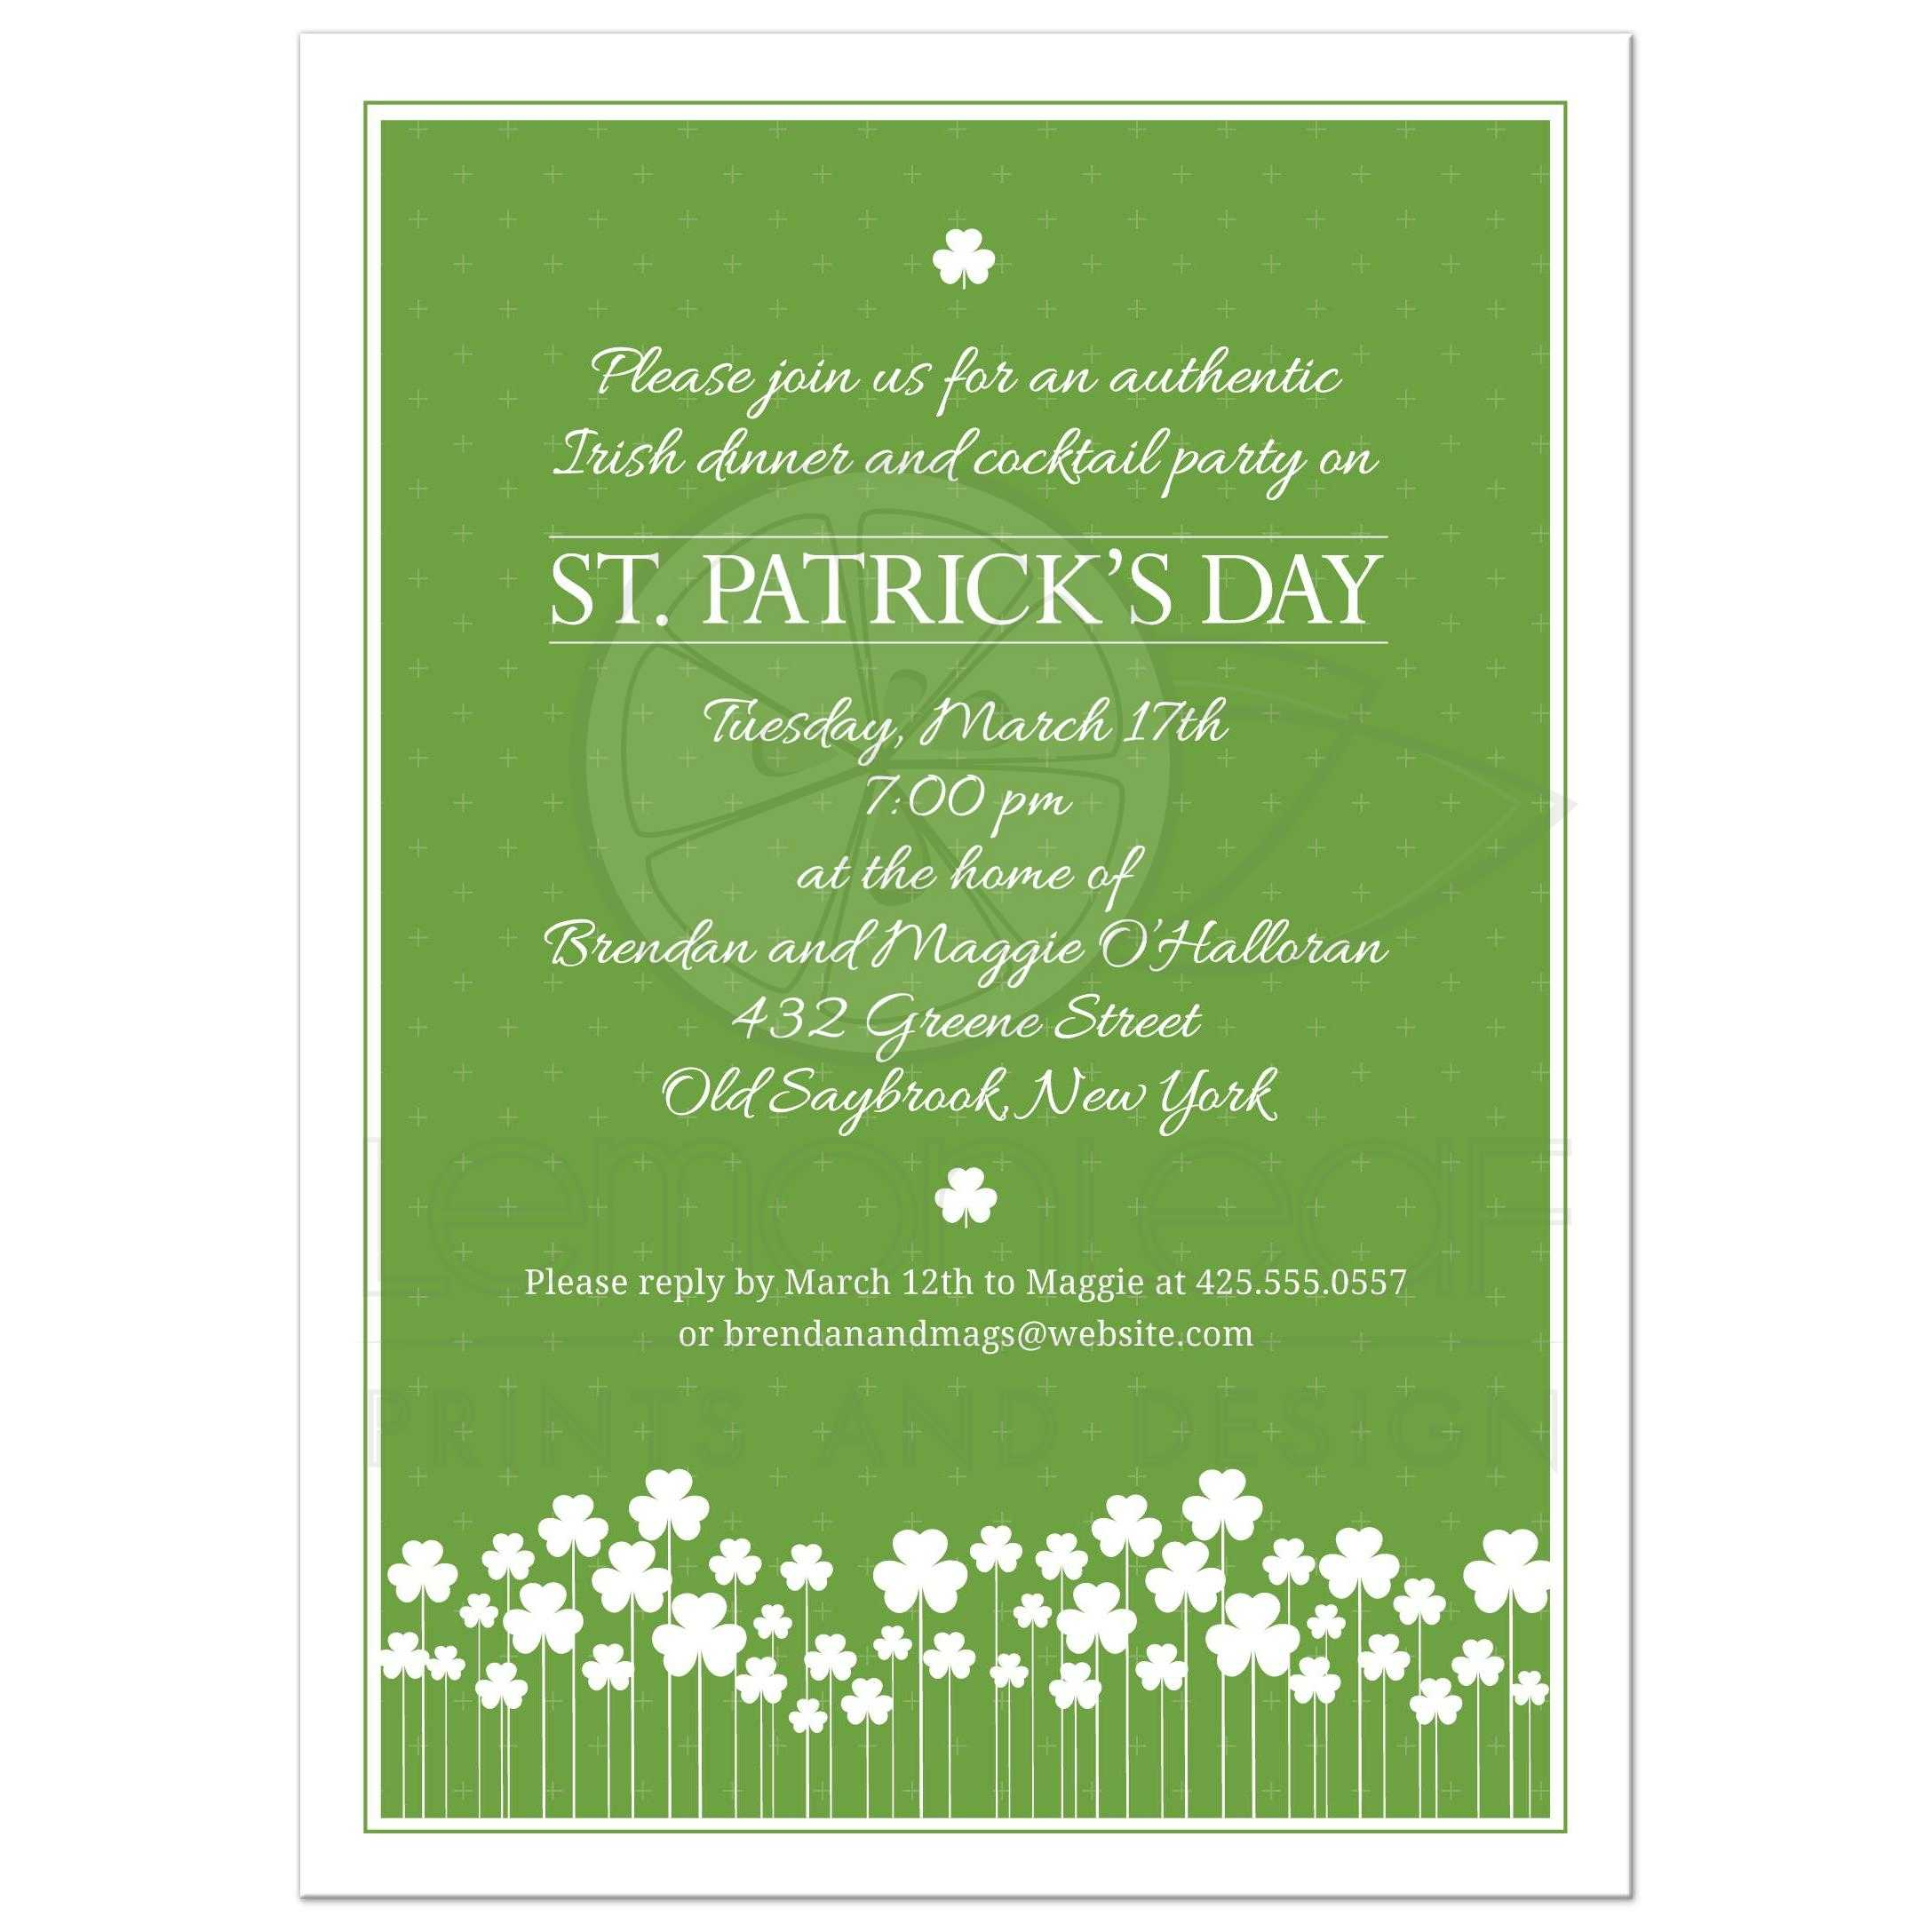 St Patricks Day Party Invitation - Shamrock Garden